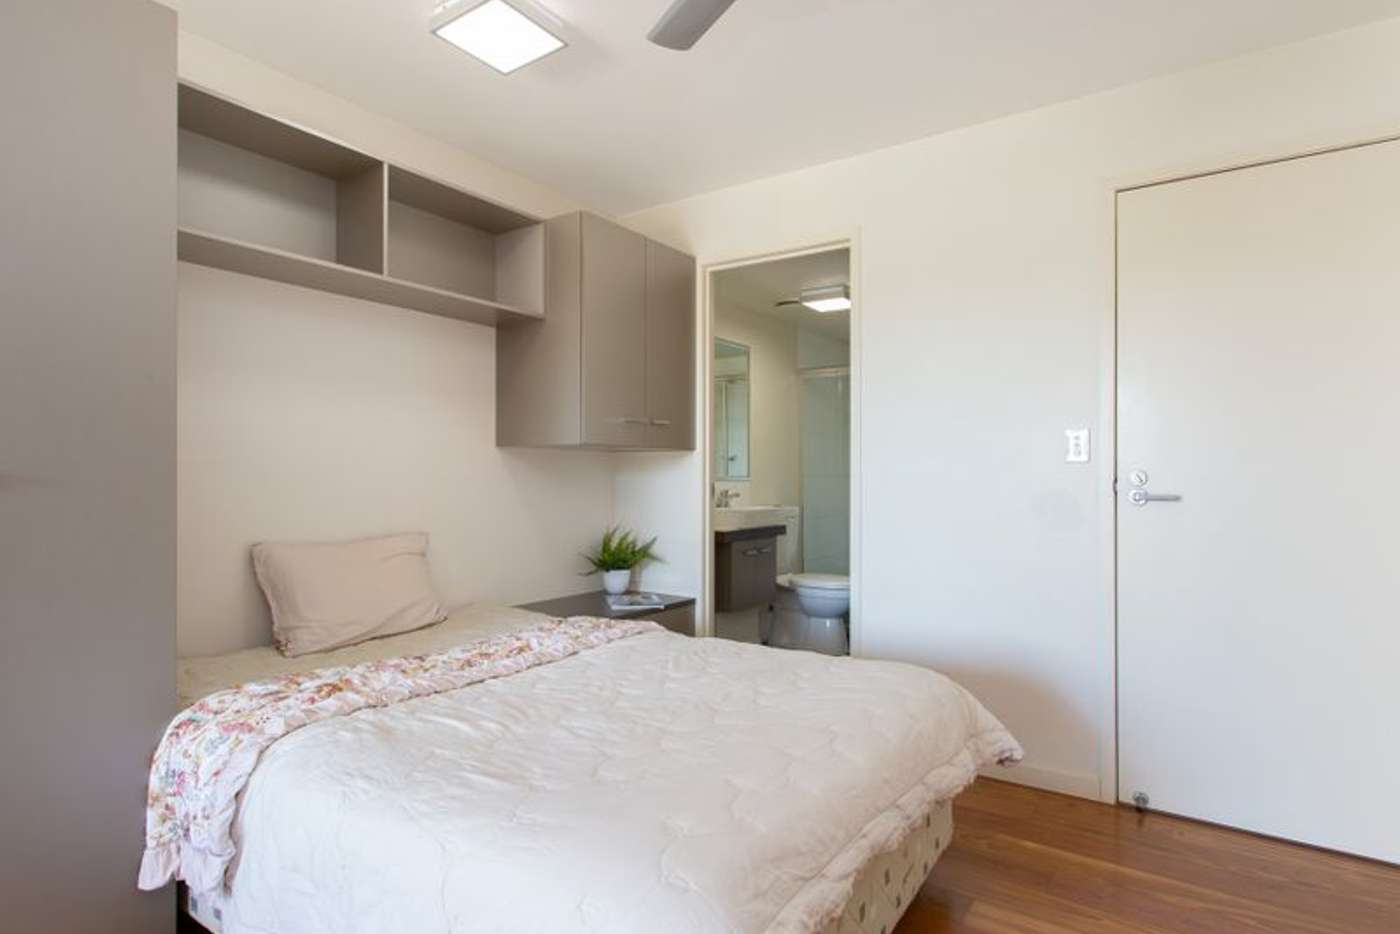 Fifth view of Homely apartment listing, 47/48 Walcott Street, St Lucia QLD 4067